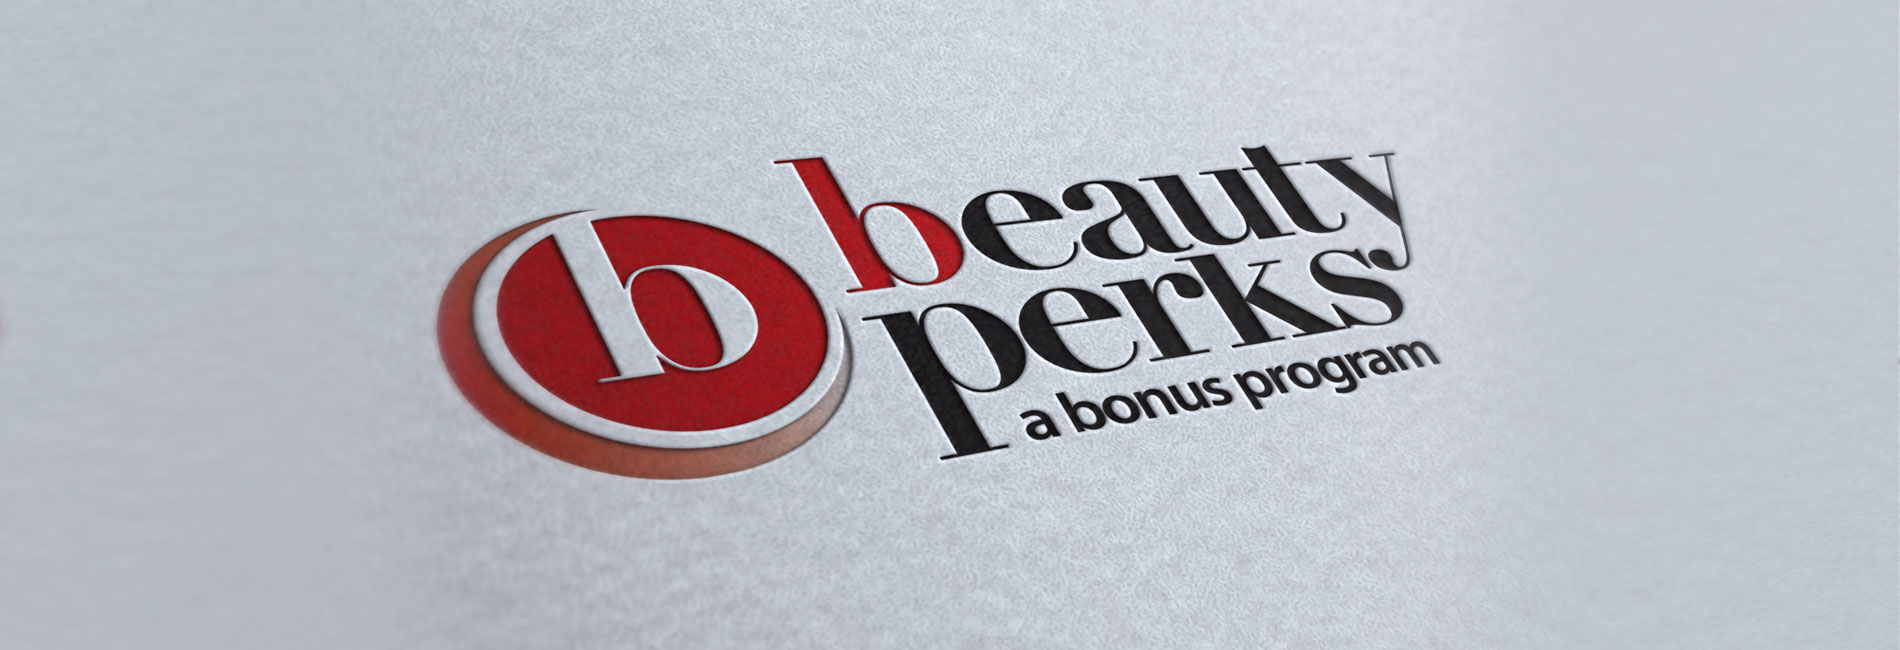 beauty perks logo